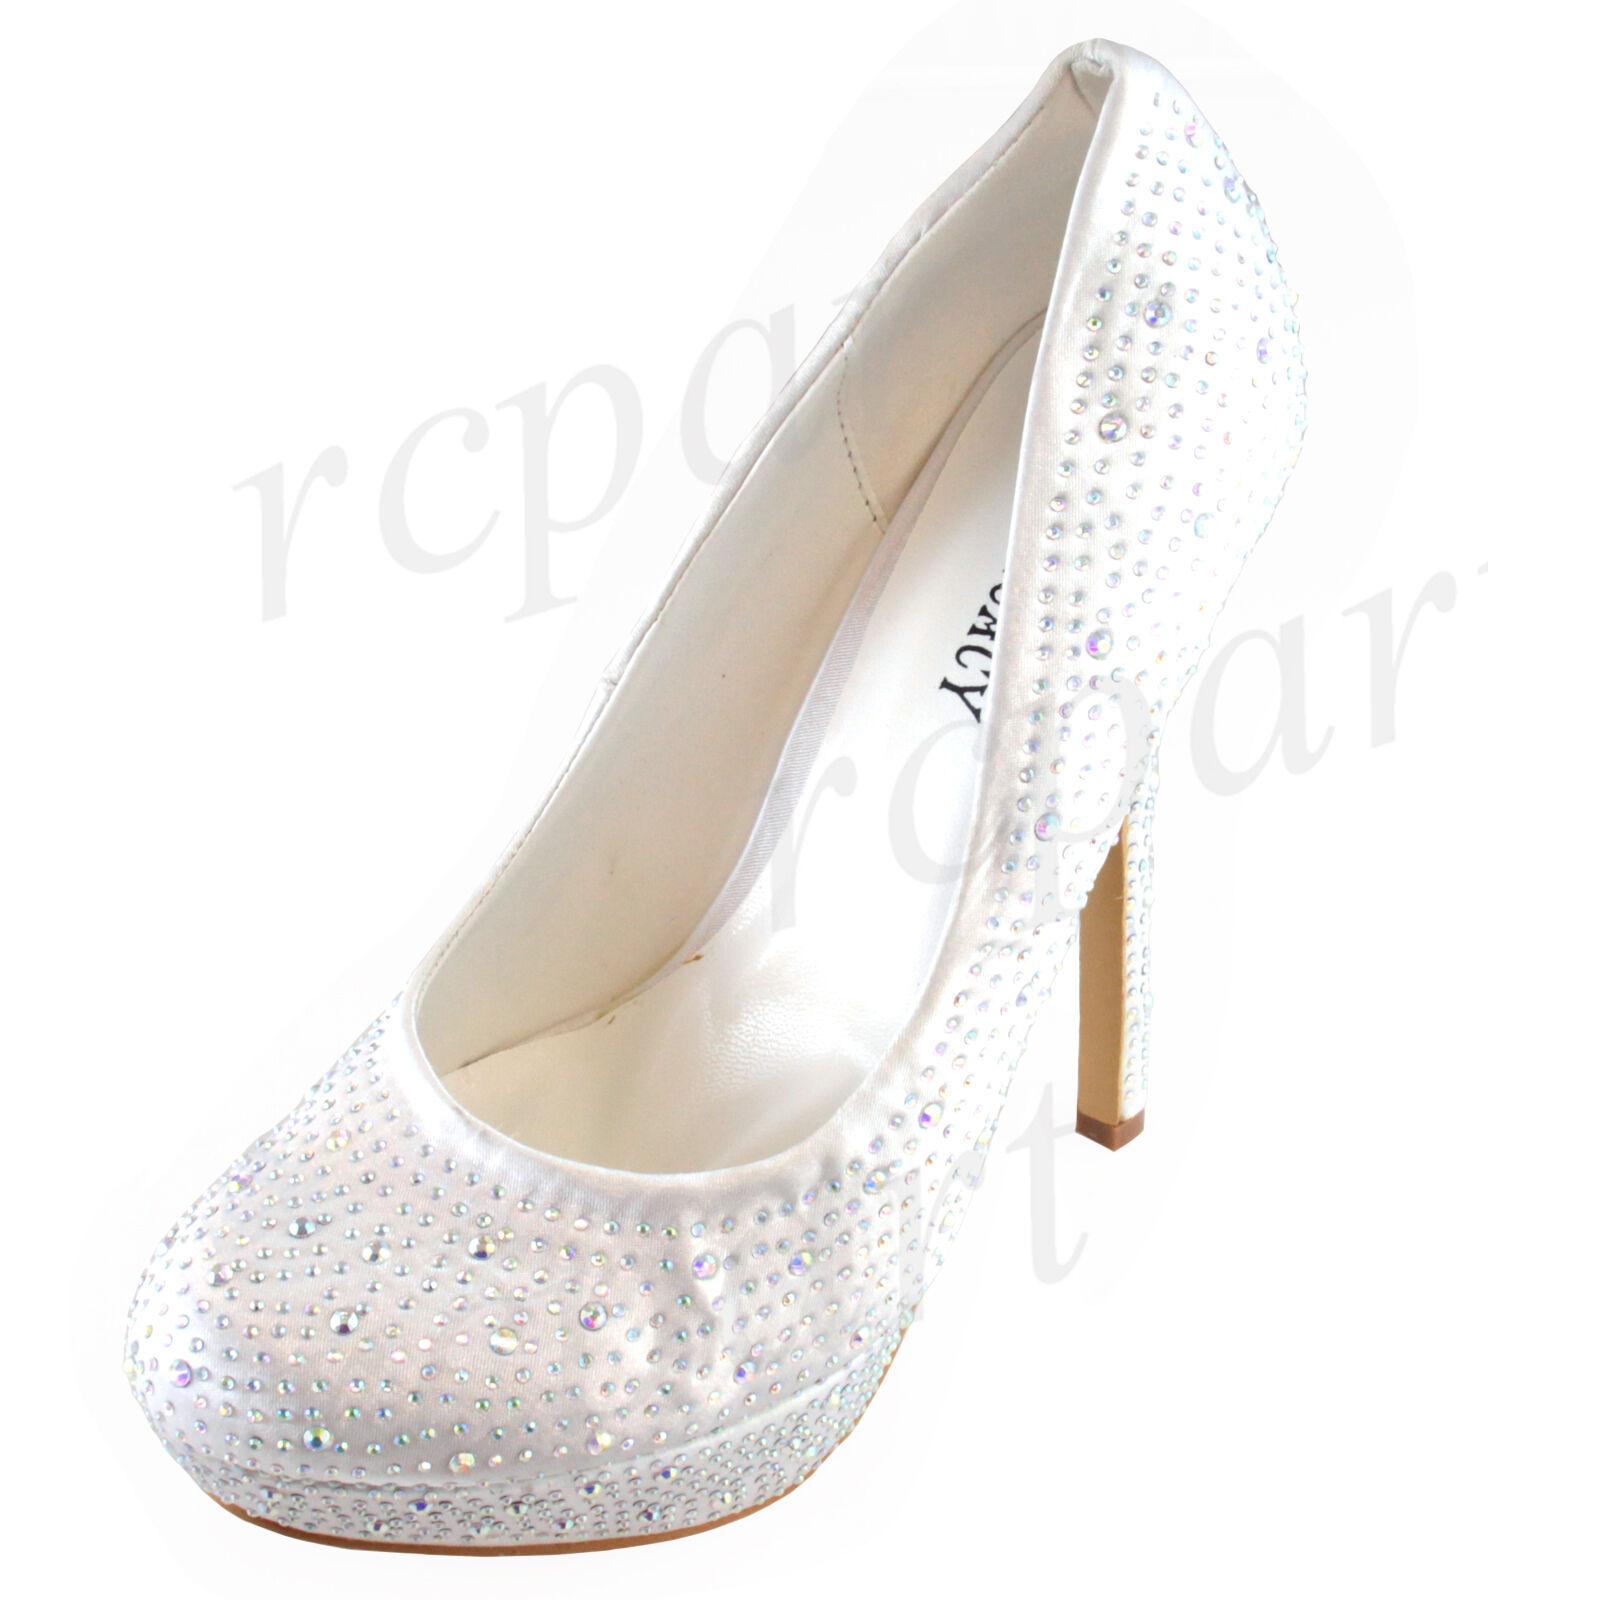 New women's shoes stilettos pumps rhinestones evening weddin